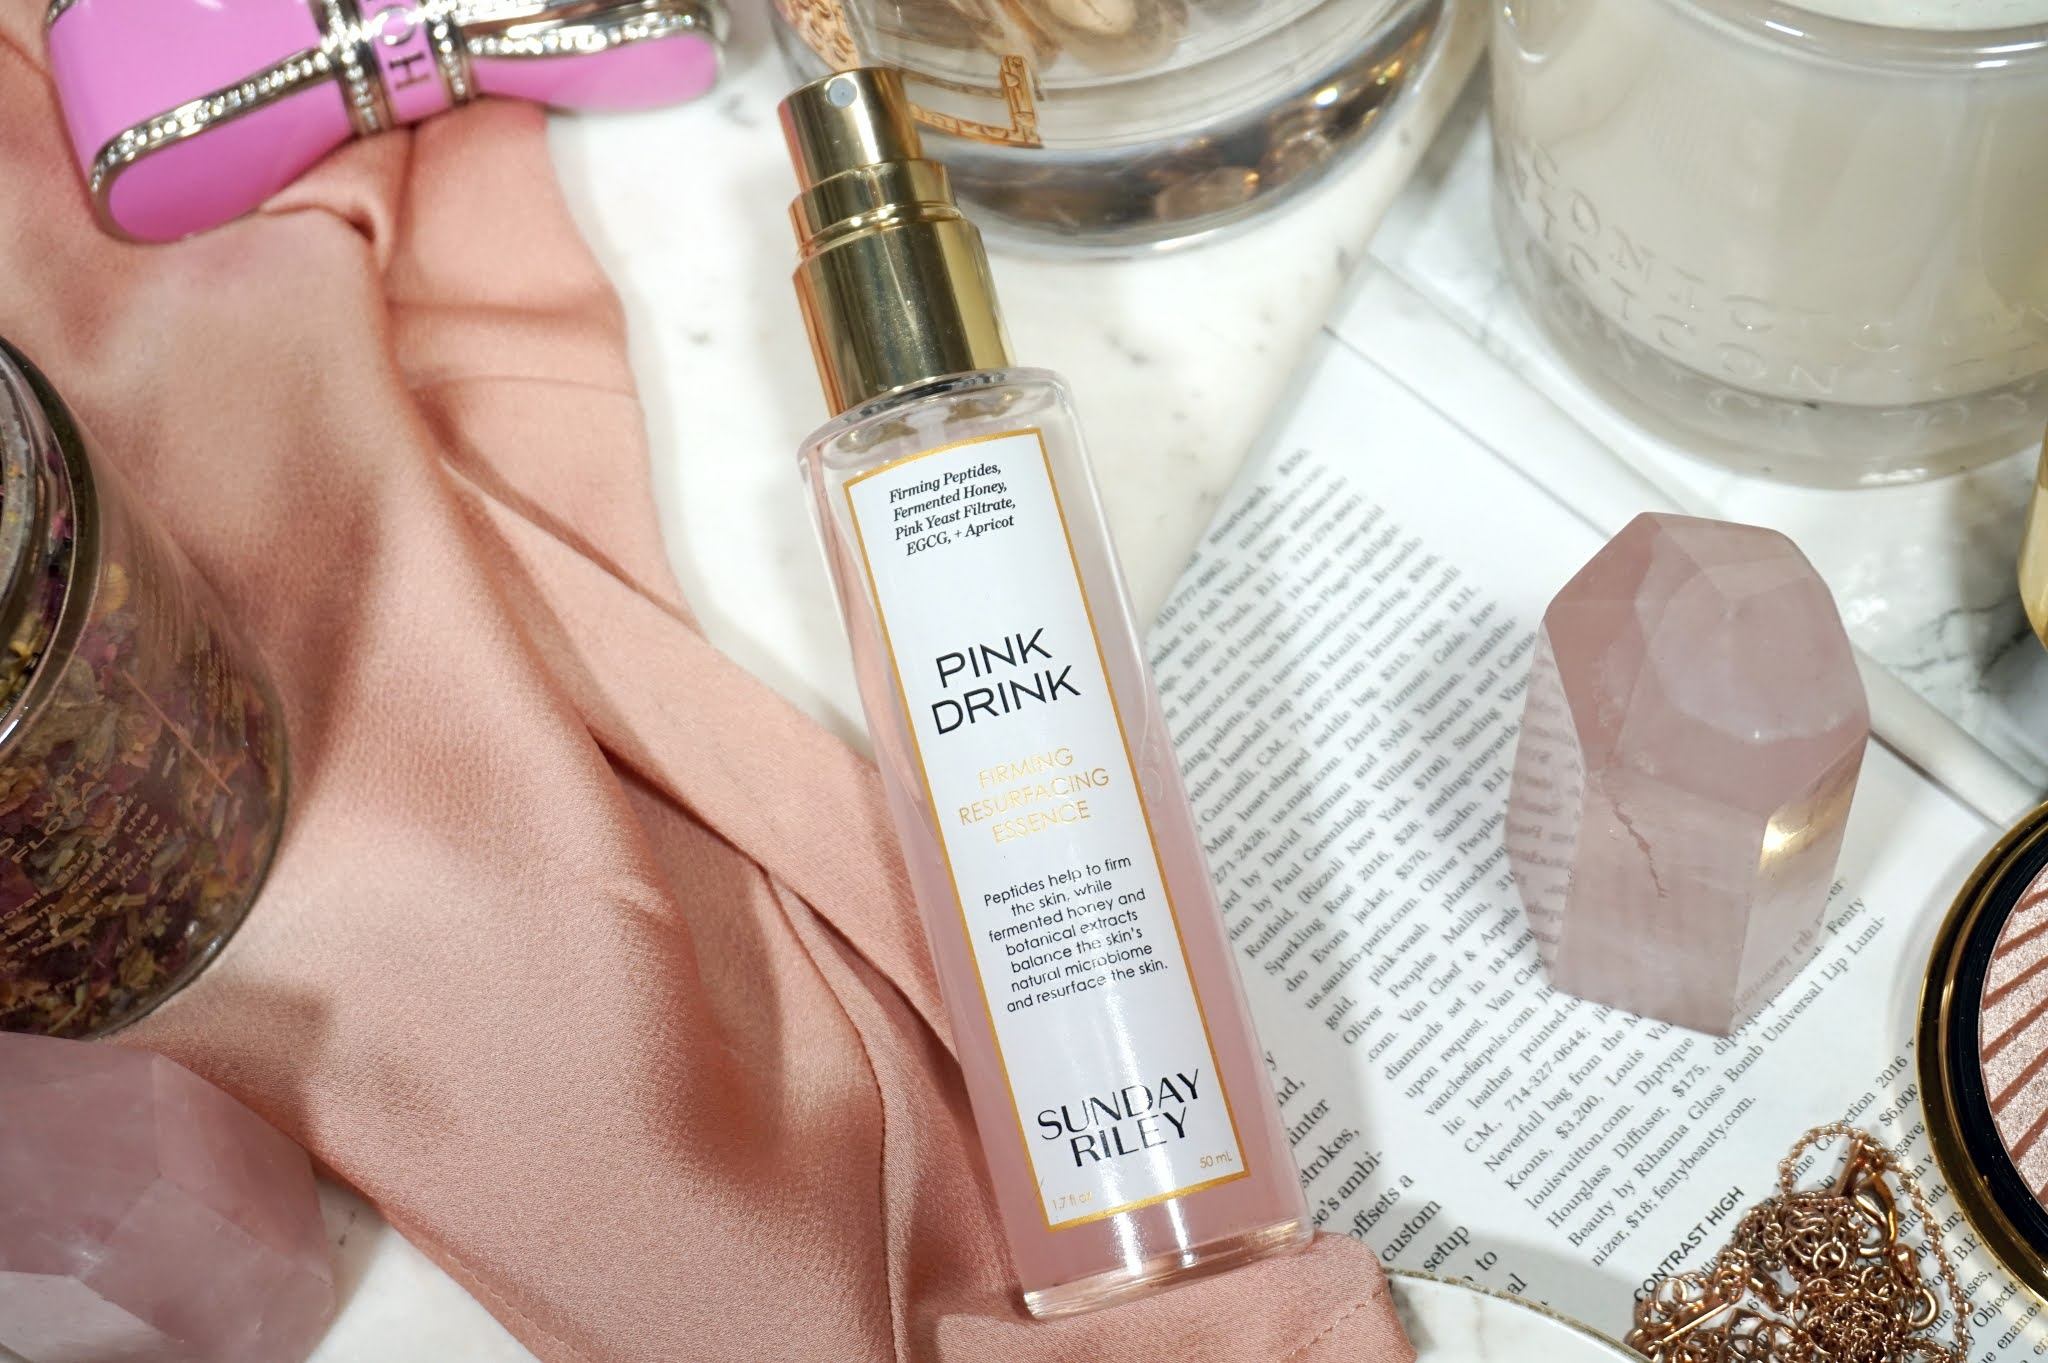 Sunday Riley Pink Drink Firming Resurfacing Essence Review